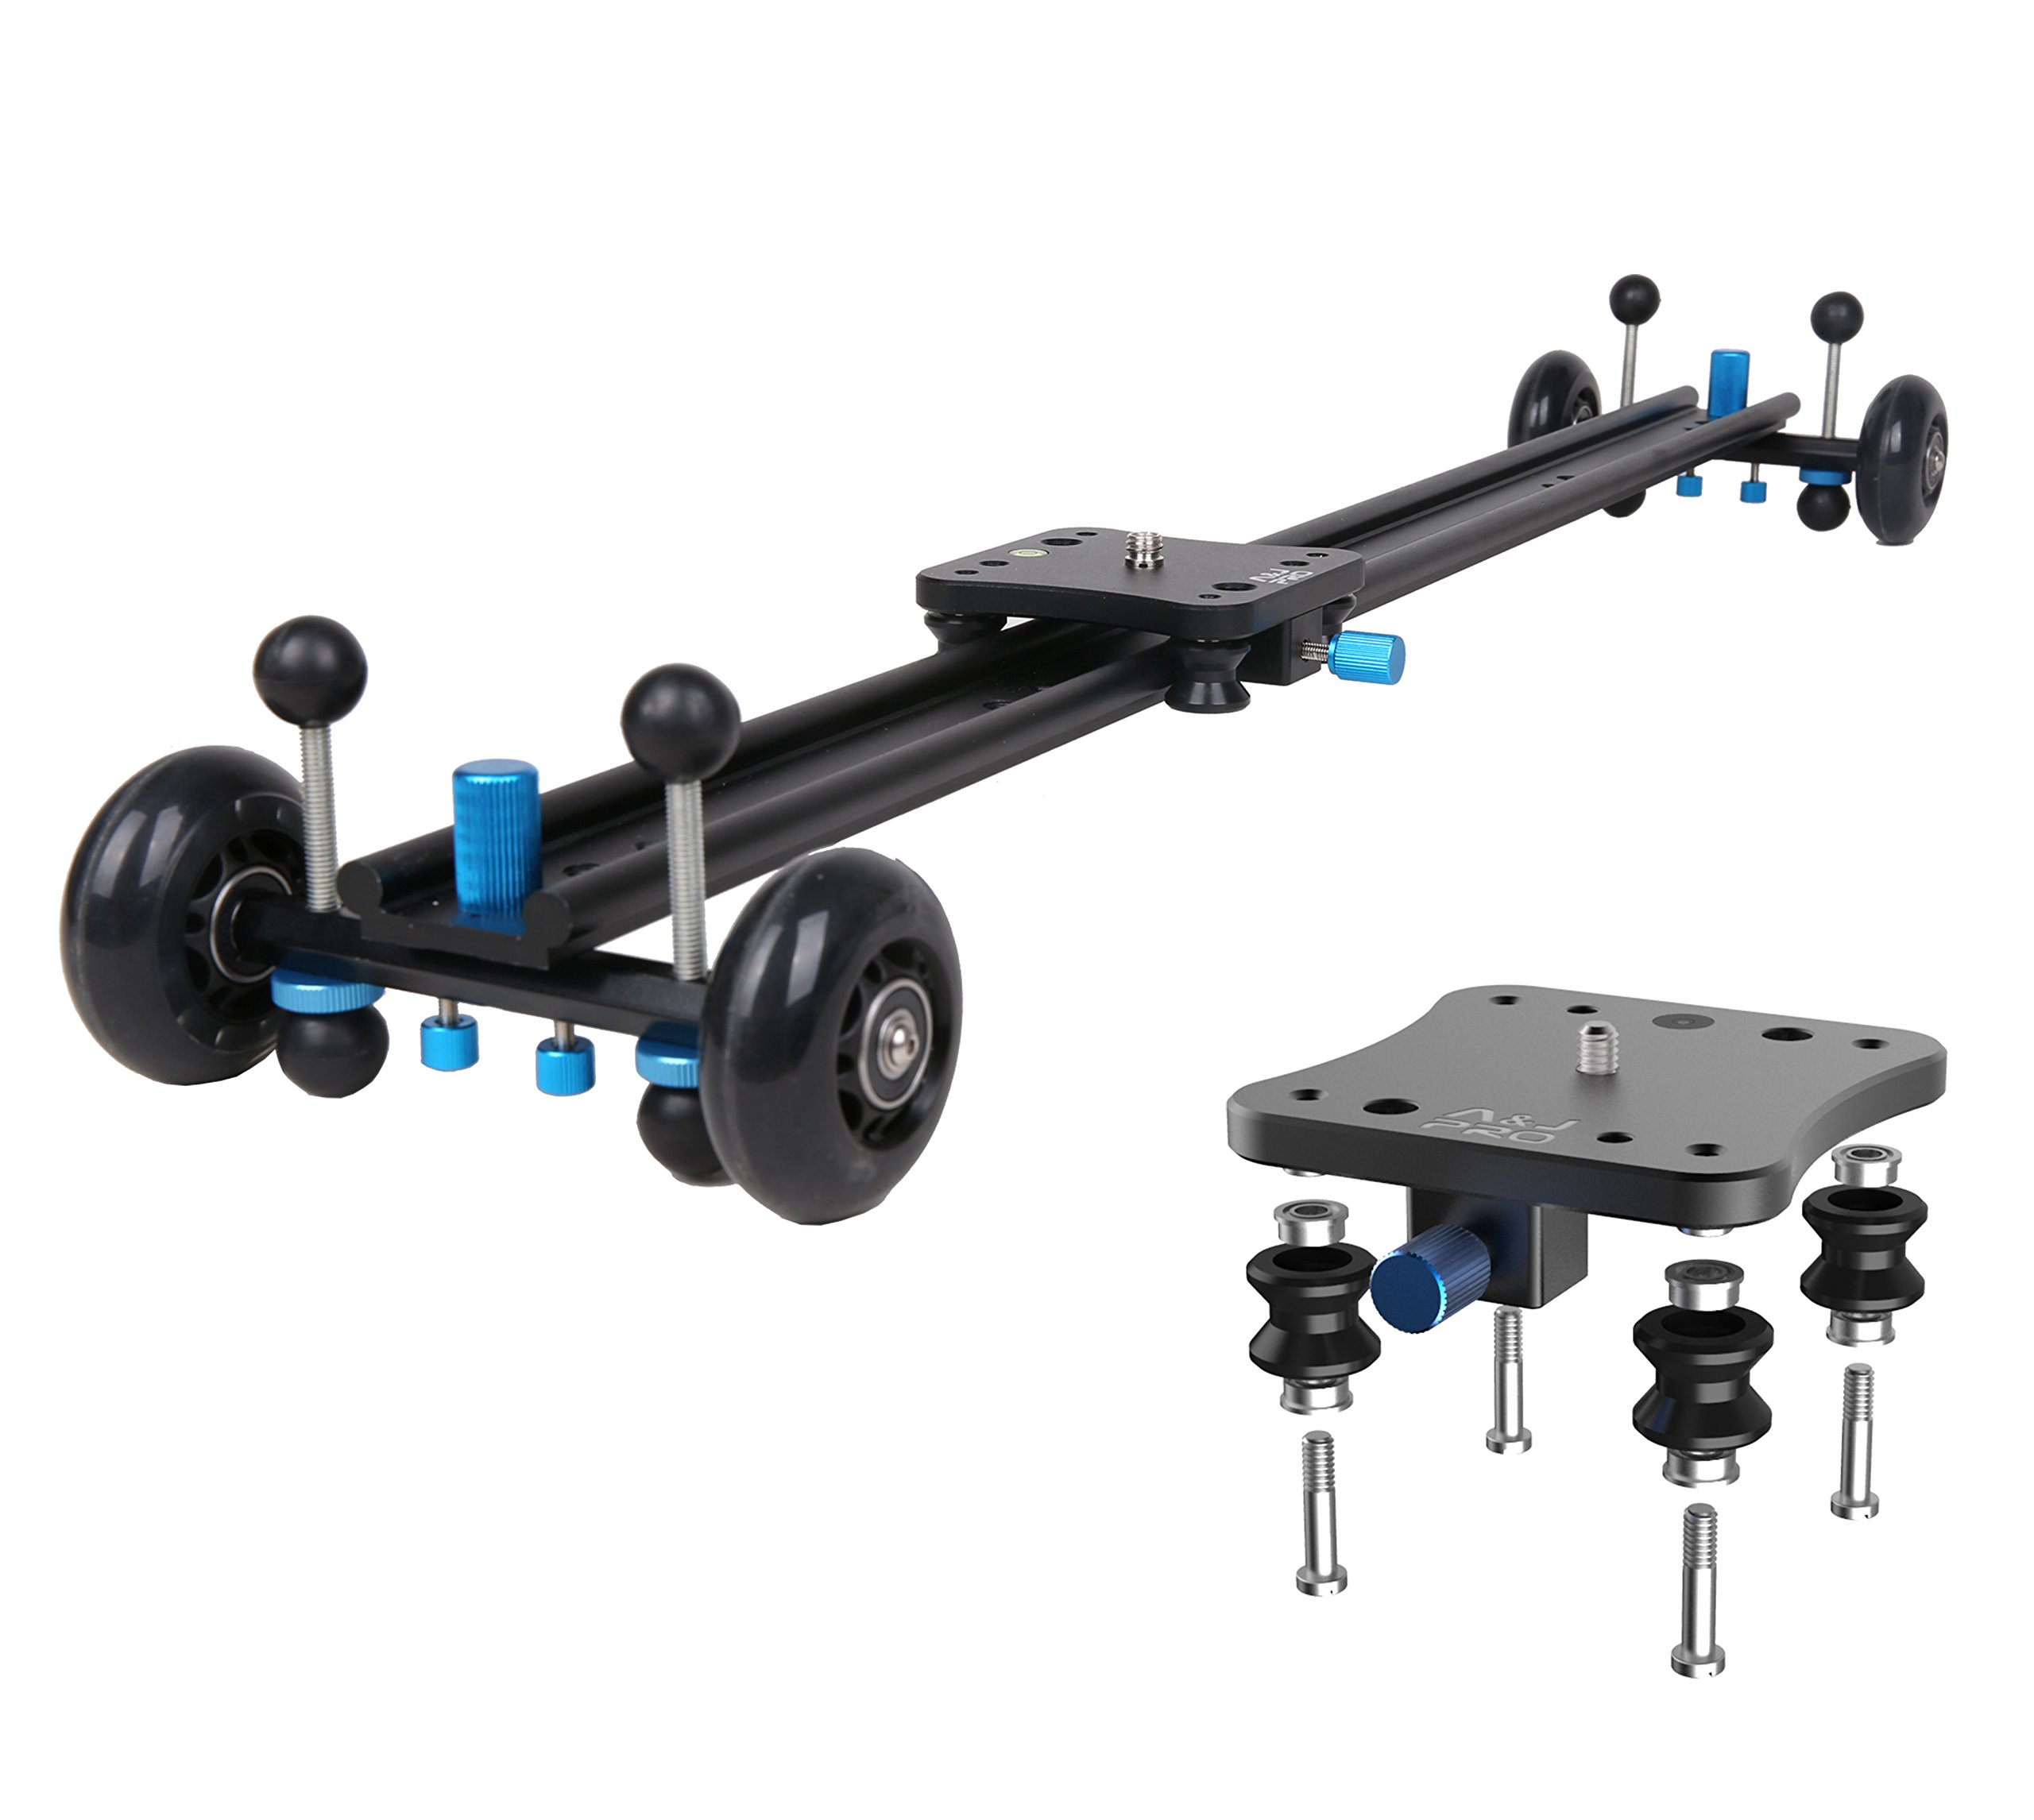 A&J ANJMVSL80 Camera Slider with Aluminum Alloy 4 Wheels Video Rail Track Slider Dolly Stabilizer for Canon Nikon Sony DSLR camera, 31.5'', Black